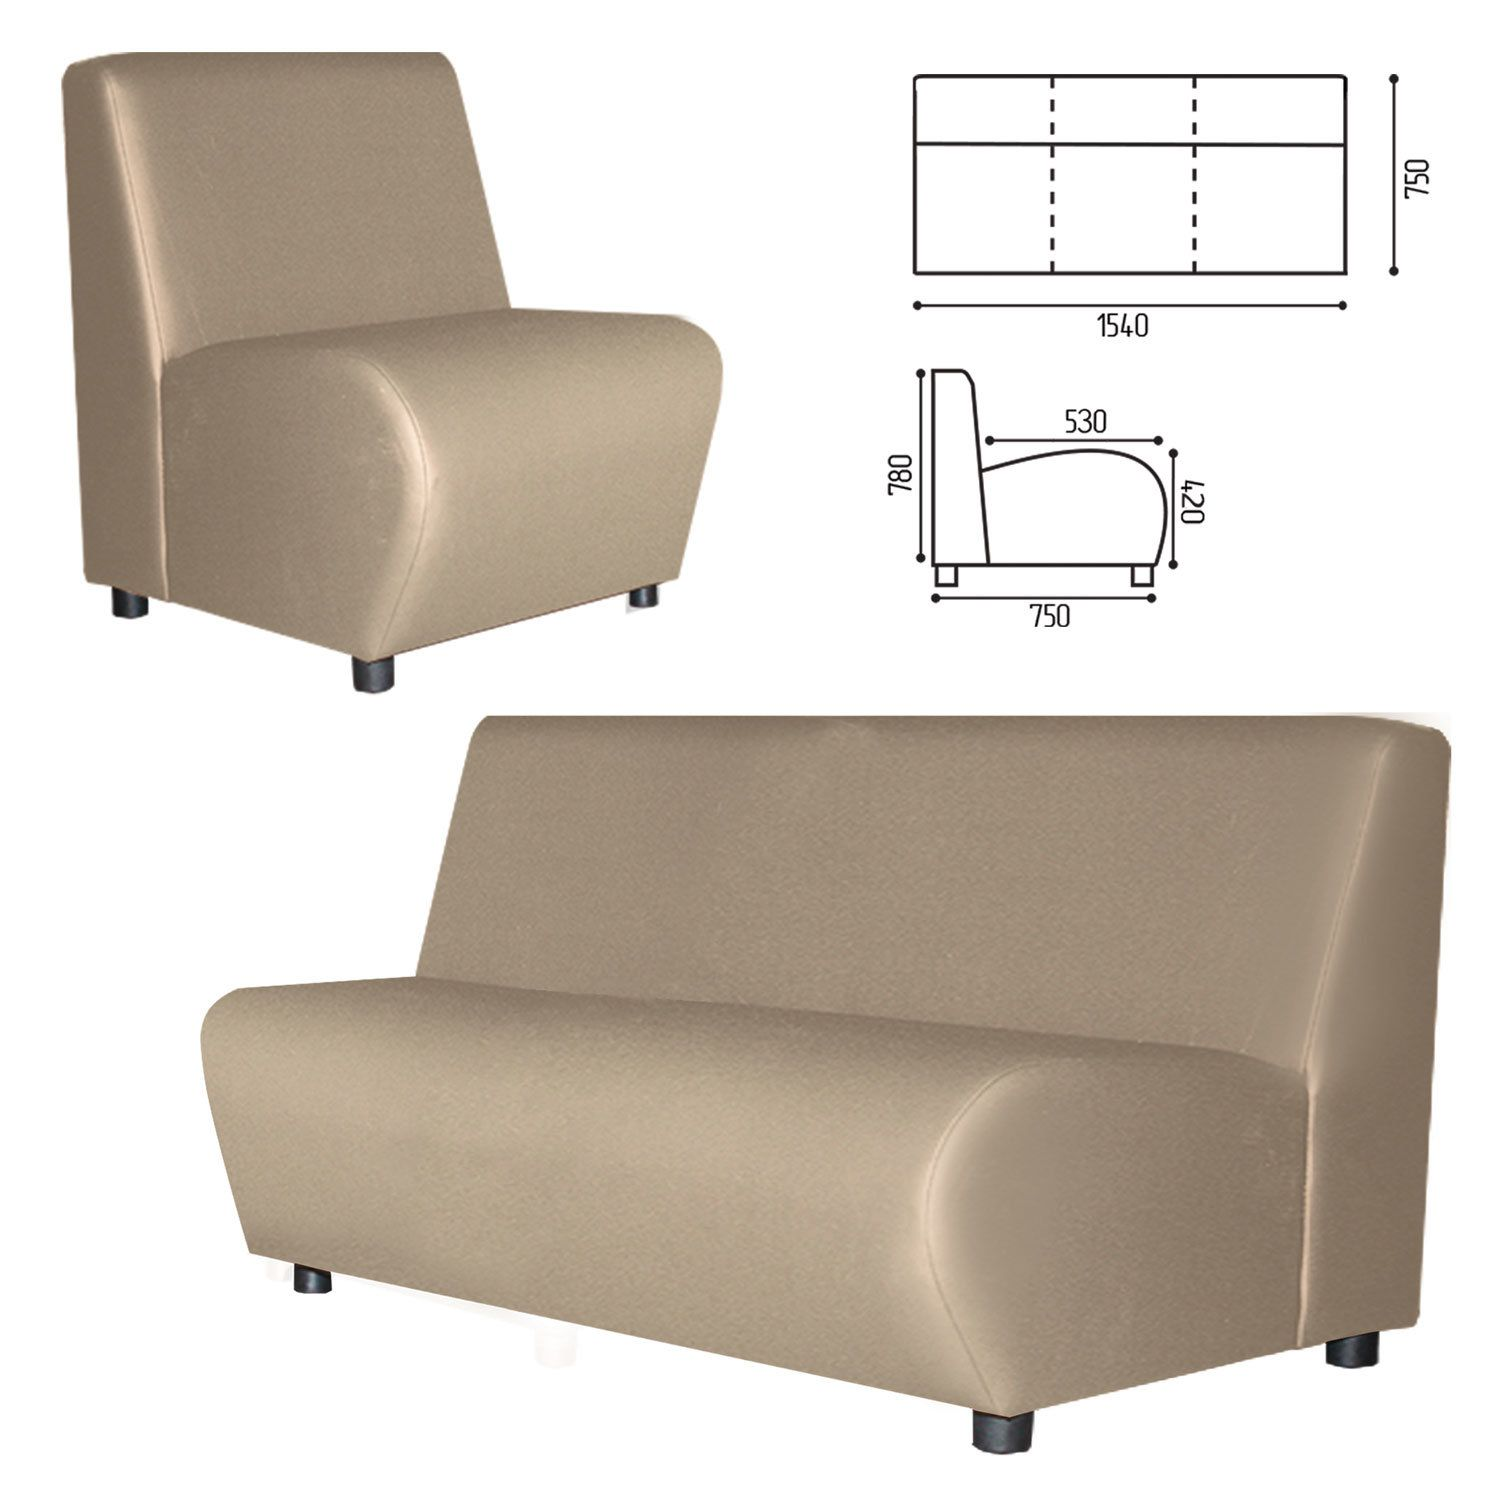 """GARTLEX / Sofa soft three-seater """"Cloud"""", """"V-600"""", 1540x750x780 mm, without armrests, eco-leather, beige"""